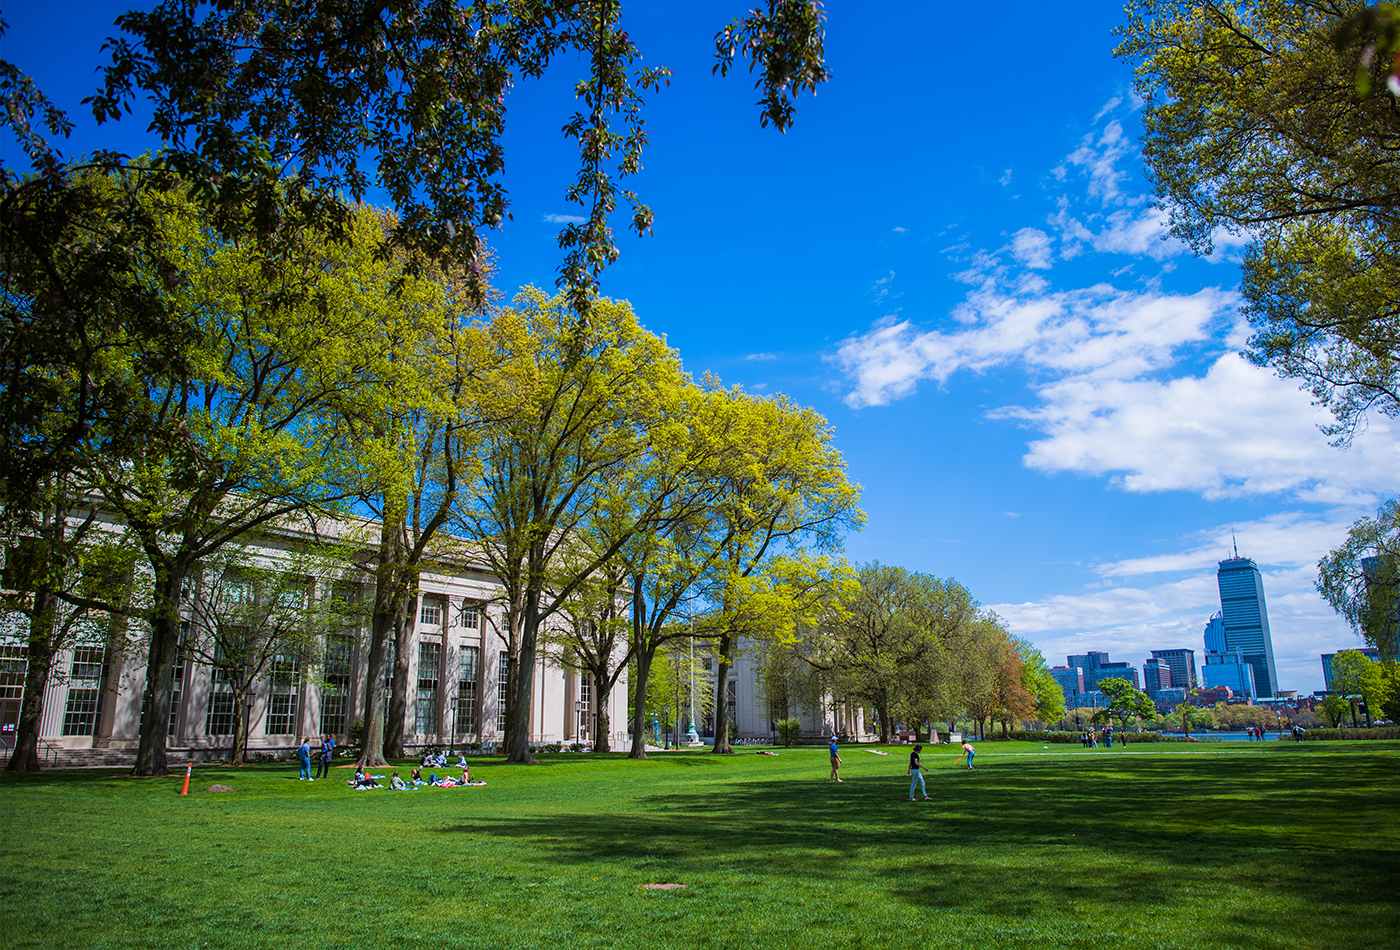 A photo of the MIT Campus at springtime.